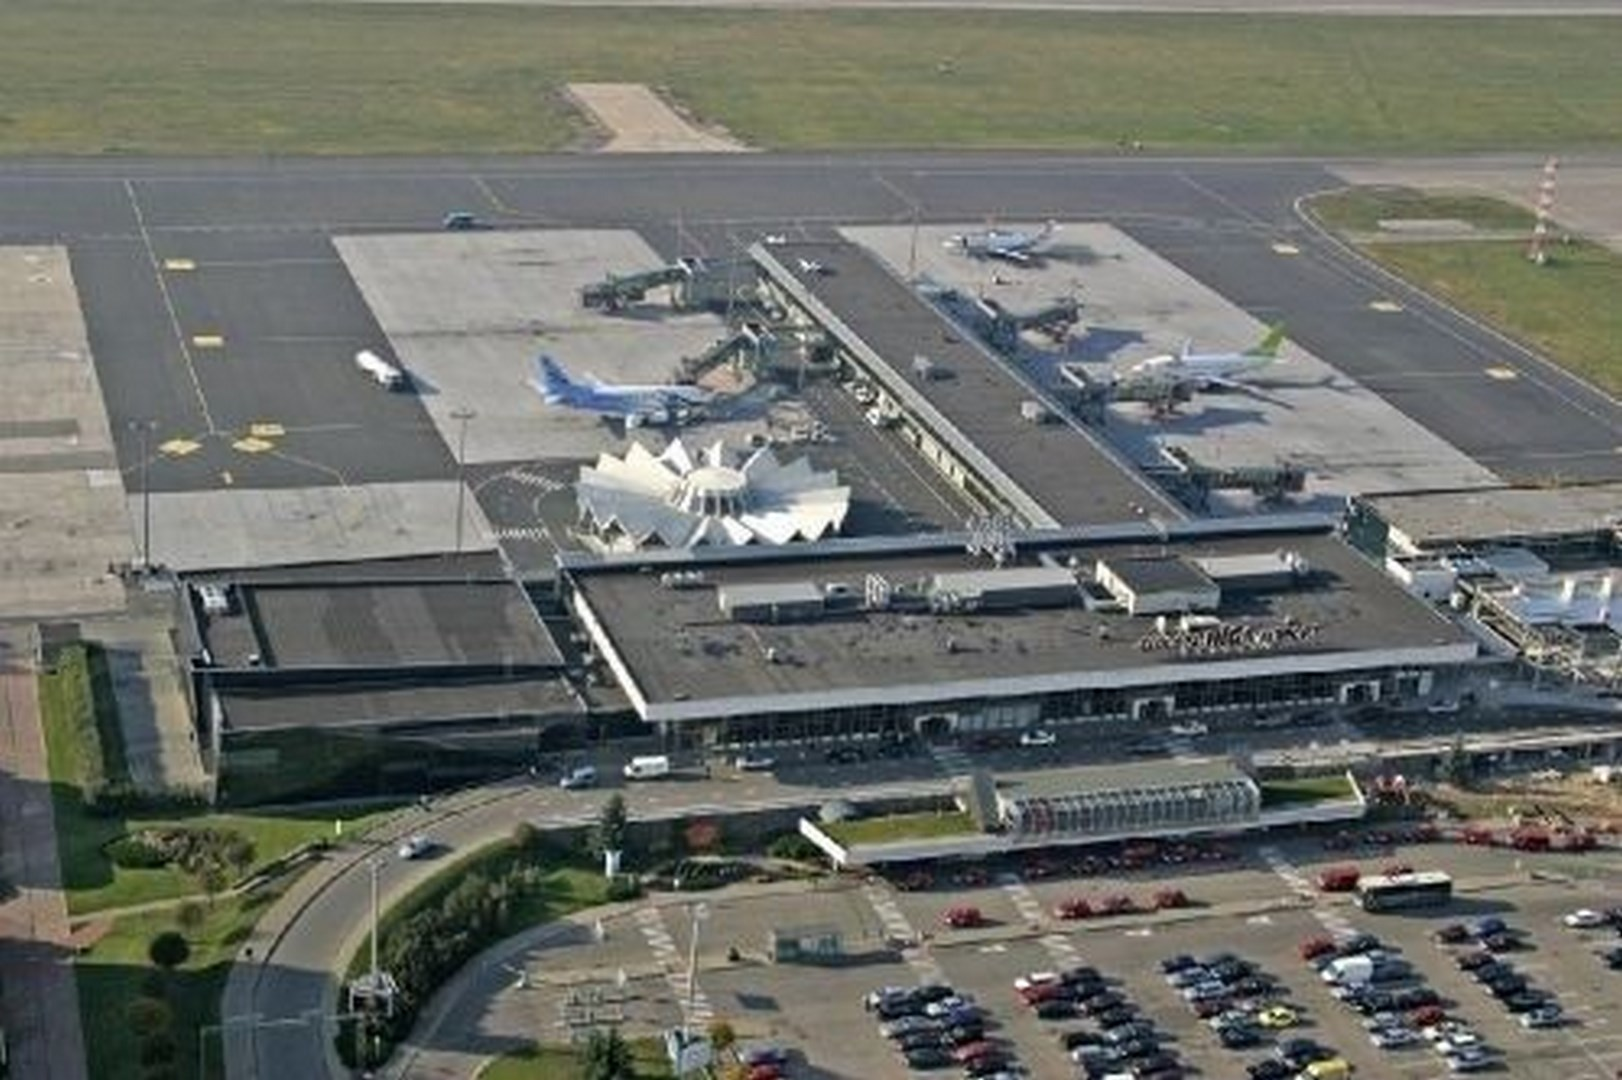 Riga Airport in Latvia